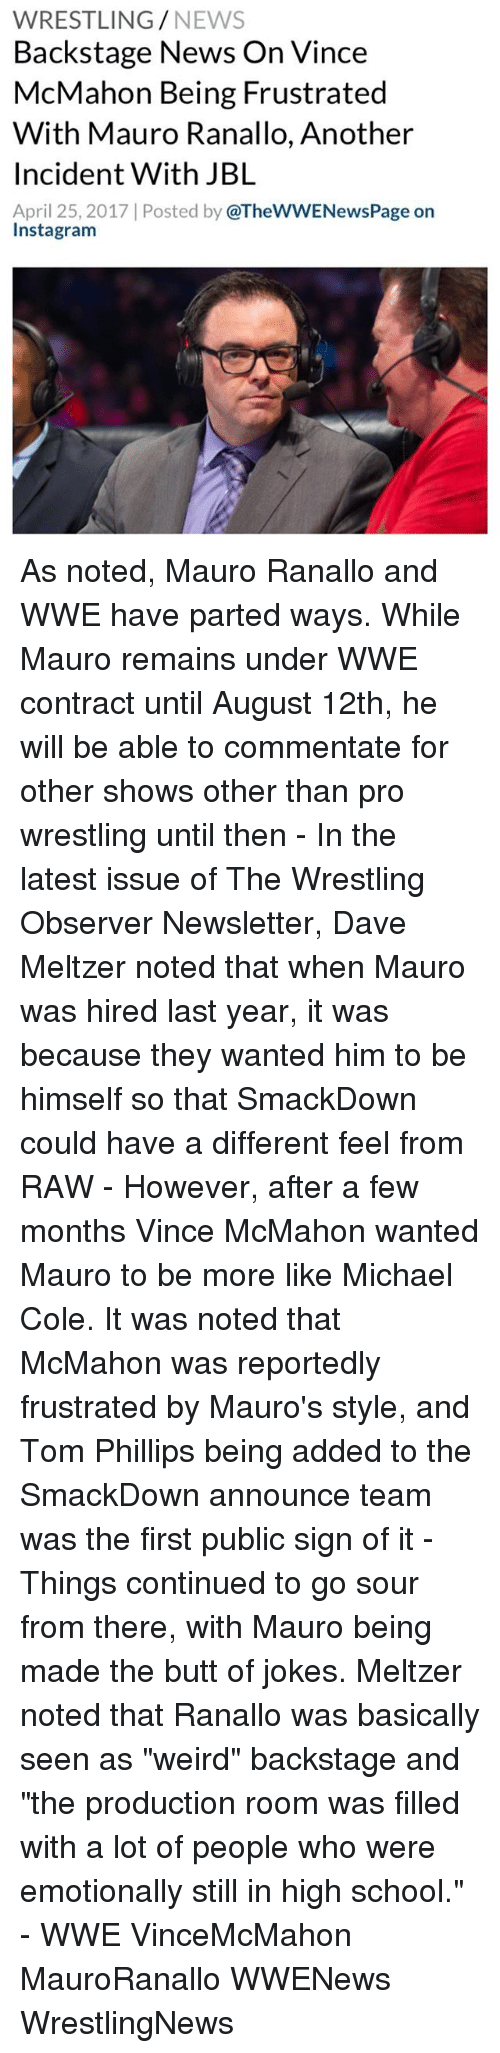 """michael cole: WRESTLING  NEWS  Backstage News On Vince  McMahon Being Frustrated  With Mauro Ranallo, Another  Incident With JBL  April 25, 2017 Posted by  @TheWWENewsPage on  Insta gram As noted, Mauro Ranallo and WWE have parted ways. While Mauro remains under WWE contract until August 12th, he will be able to commentate for other shows other than pro wrestling until then - In the latest issue of The Wrestling Observer Newsletter, Dave Meltzer noted that when Mauro was hired last year, it was because they wanted him to be himself so that SmackDown could have a different feel from RAW - However, after a few months Vince McMahon wanted Mauro to be more like Michael Cole. It was noted that McMahon was reportedly frustrated by Mauro's style, and Tom Phillips being added to the SmackDown announce team was the first public sign of it - Things continued to go sour from there, with Mauro being made the butt of jokes. Meltzer noted that Ranallo was basically seen as """"weird"""" backstage and """"the production room was filled with a lot of people who were emotionally still in high school."""" - WWE VinceMcMahon MauroRanallo WWENews WrestlingNews"""